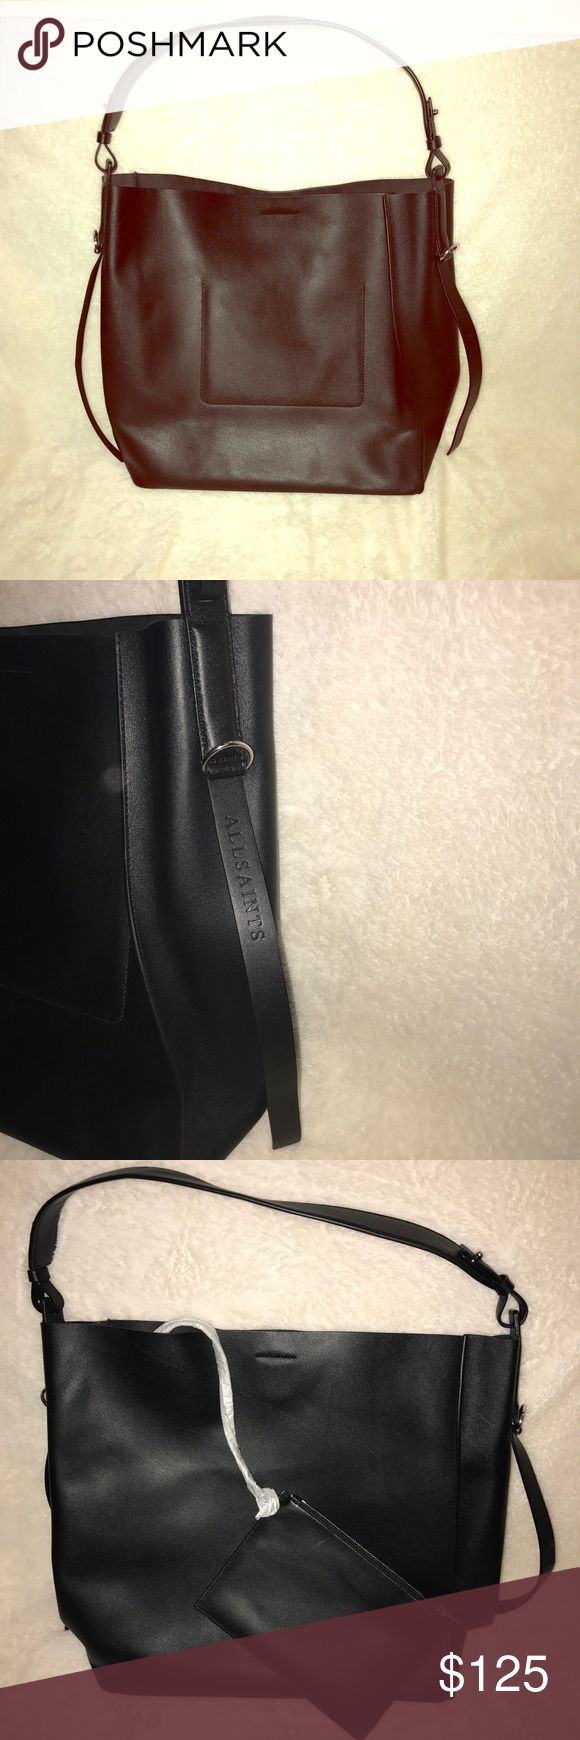 """AllSaints Paradise North/South Leather Tote Beautiful AllSaints Tote New with defect There is a surface scratch/cut on one side. Please see picture. Because of the position I do not believe it would affect the life.  Adjustable shoulder strap - Magnetic closure; lined - Interior slip pocket - Removable zip pouch - 13.5""""W x 5.5""""D x 14.5""""H; 8"""" strap drop  - Cow leather All Saints Bags Totes"""